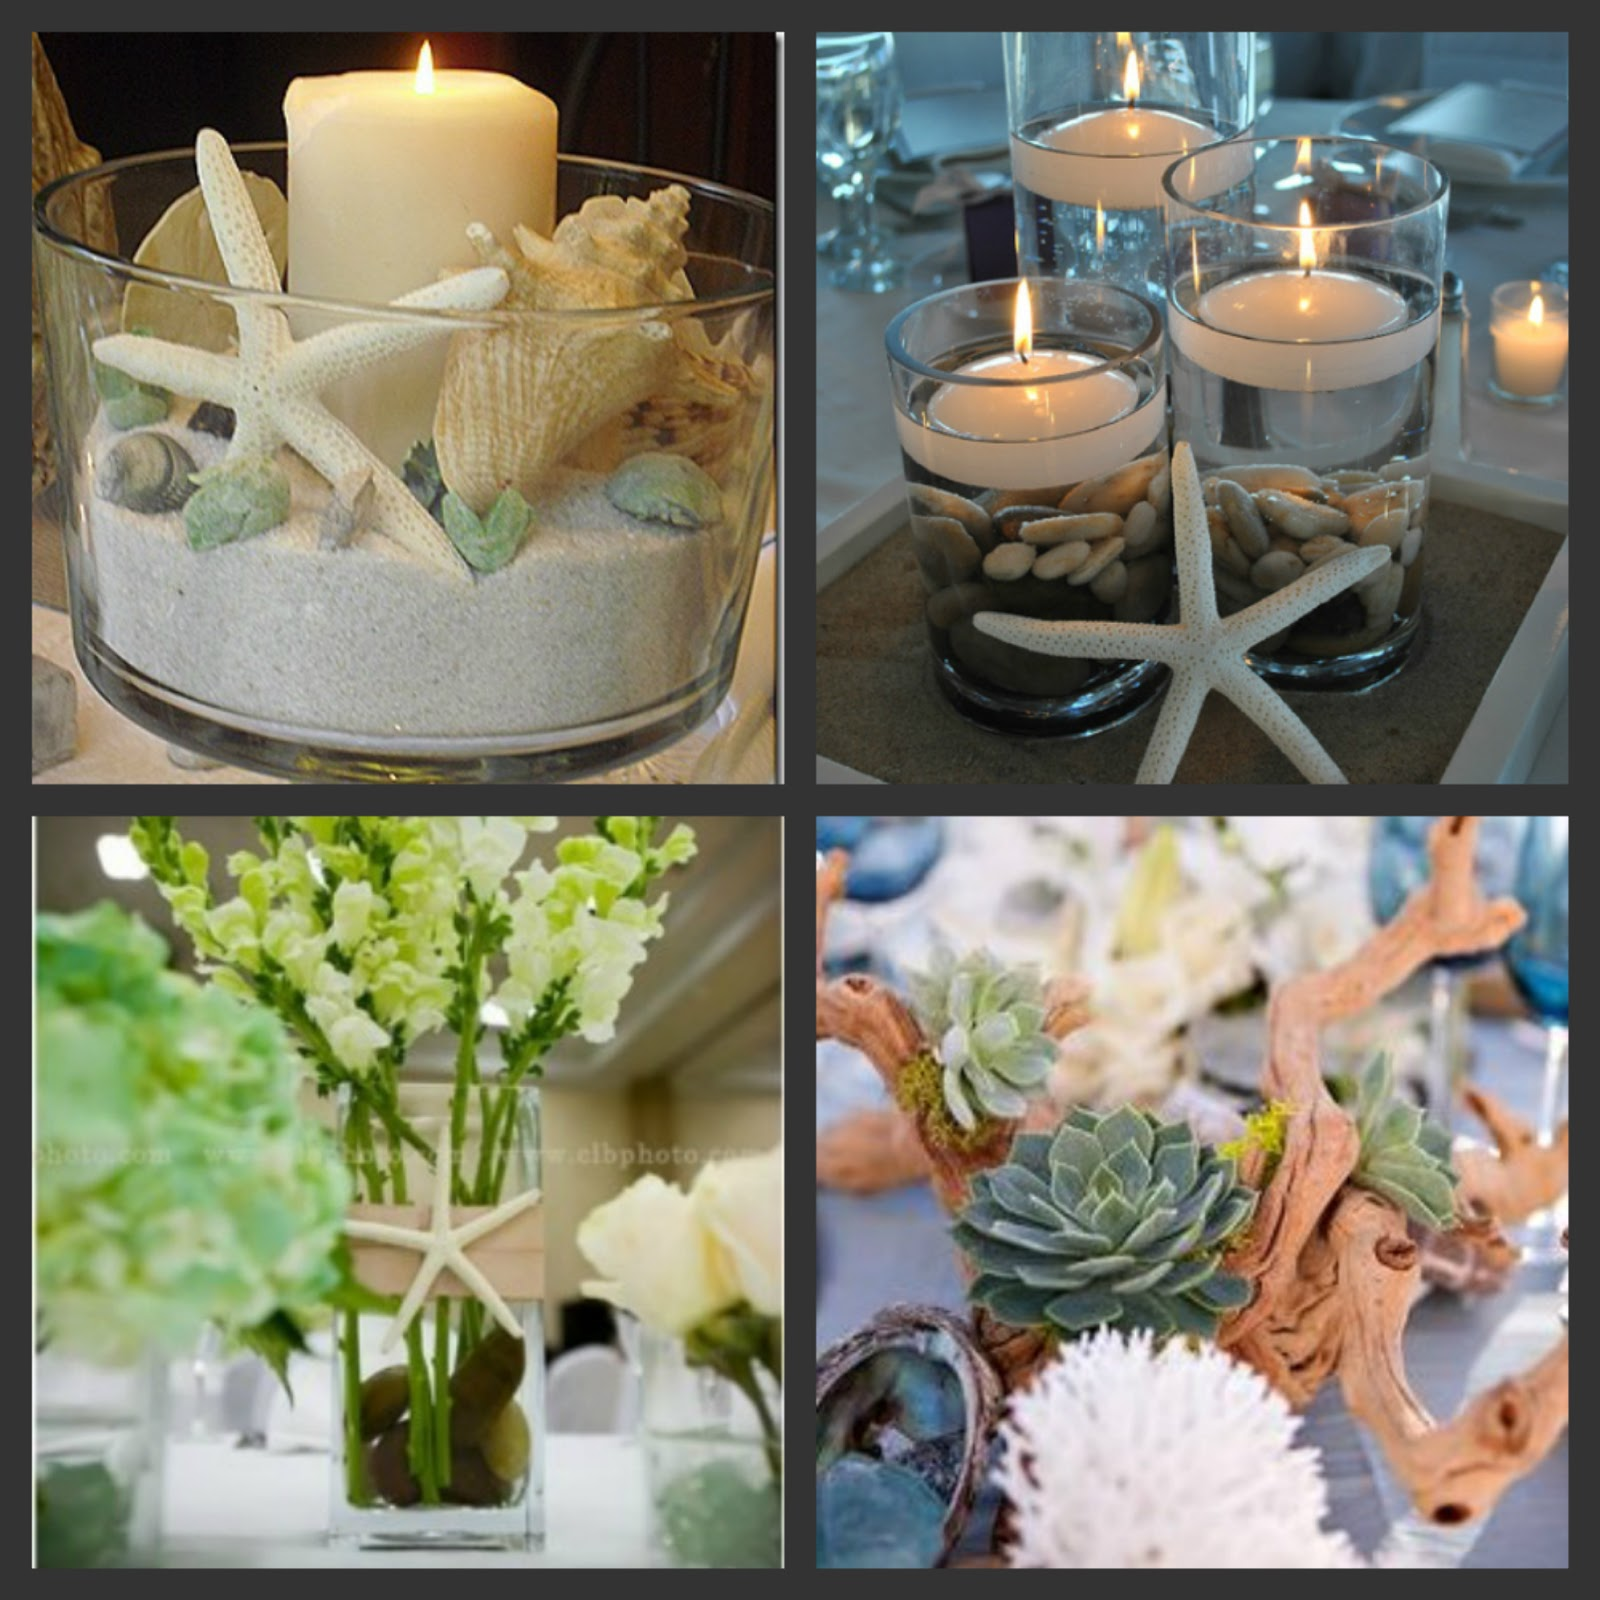 Beach Wedding Decorations Ideas: Weddings Are Fun Blog: Beach Wedding Centerpiece Ideas